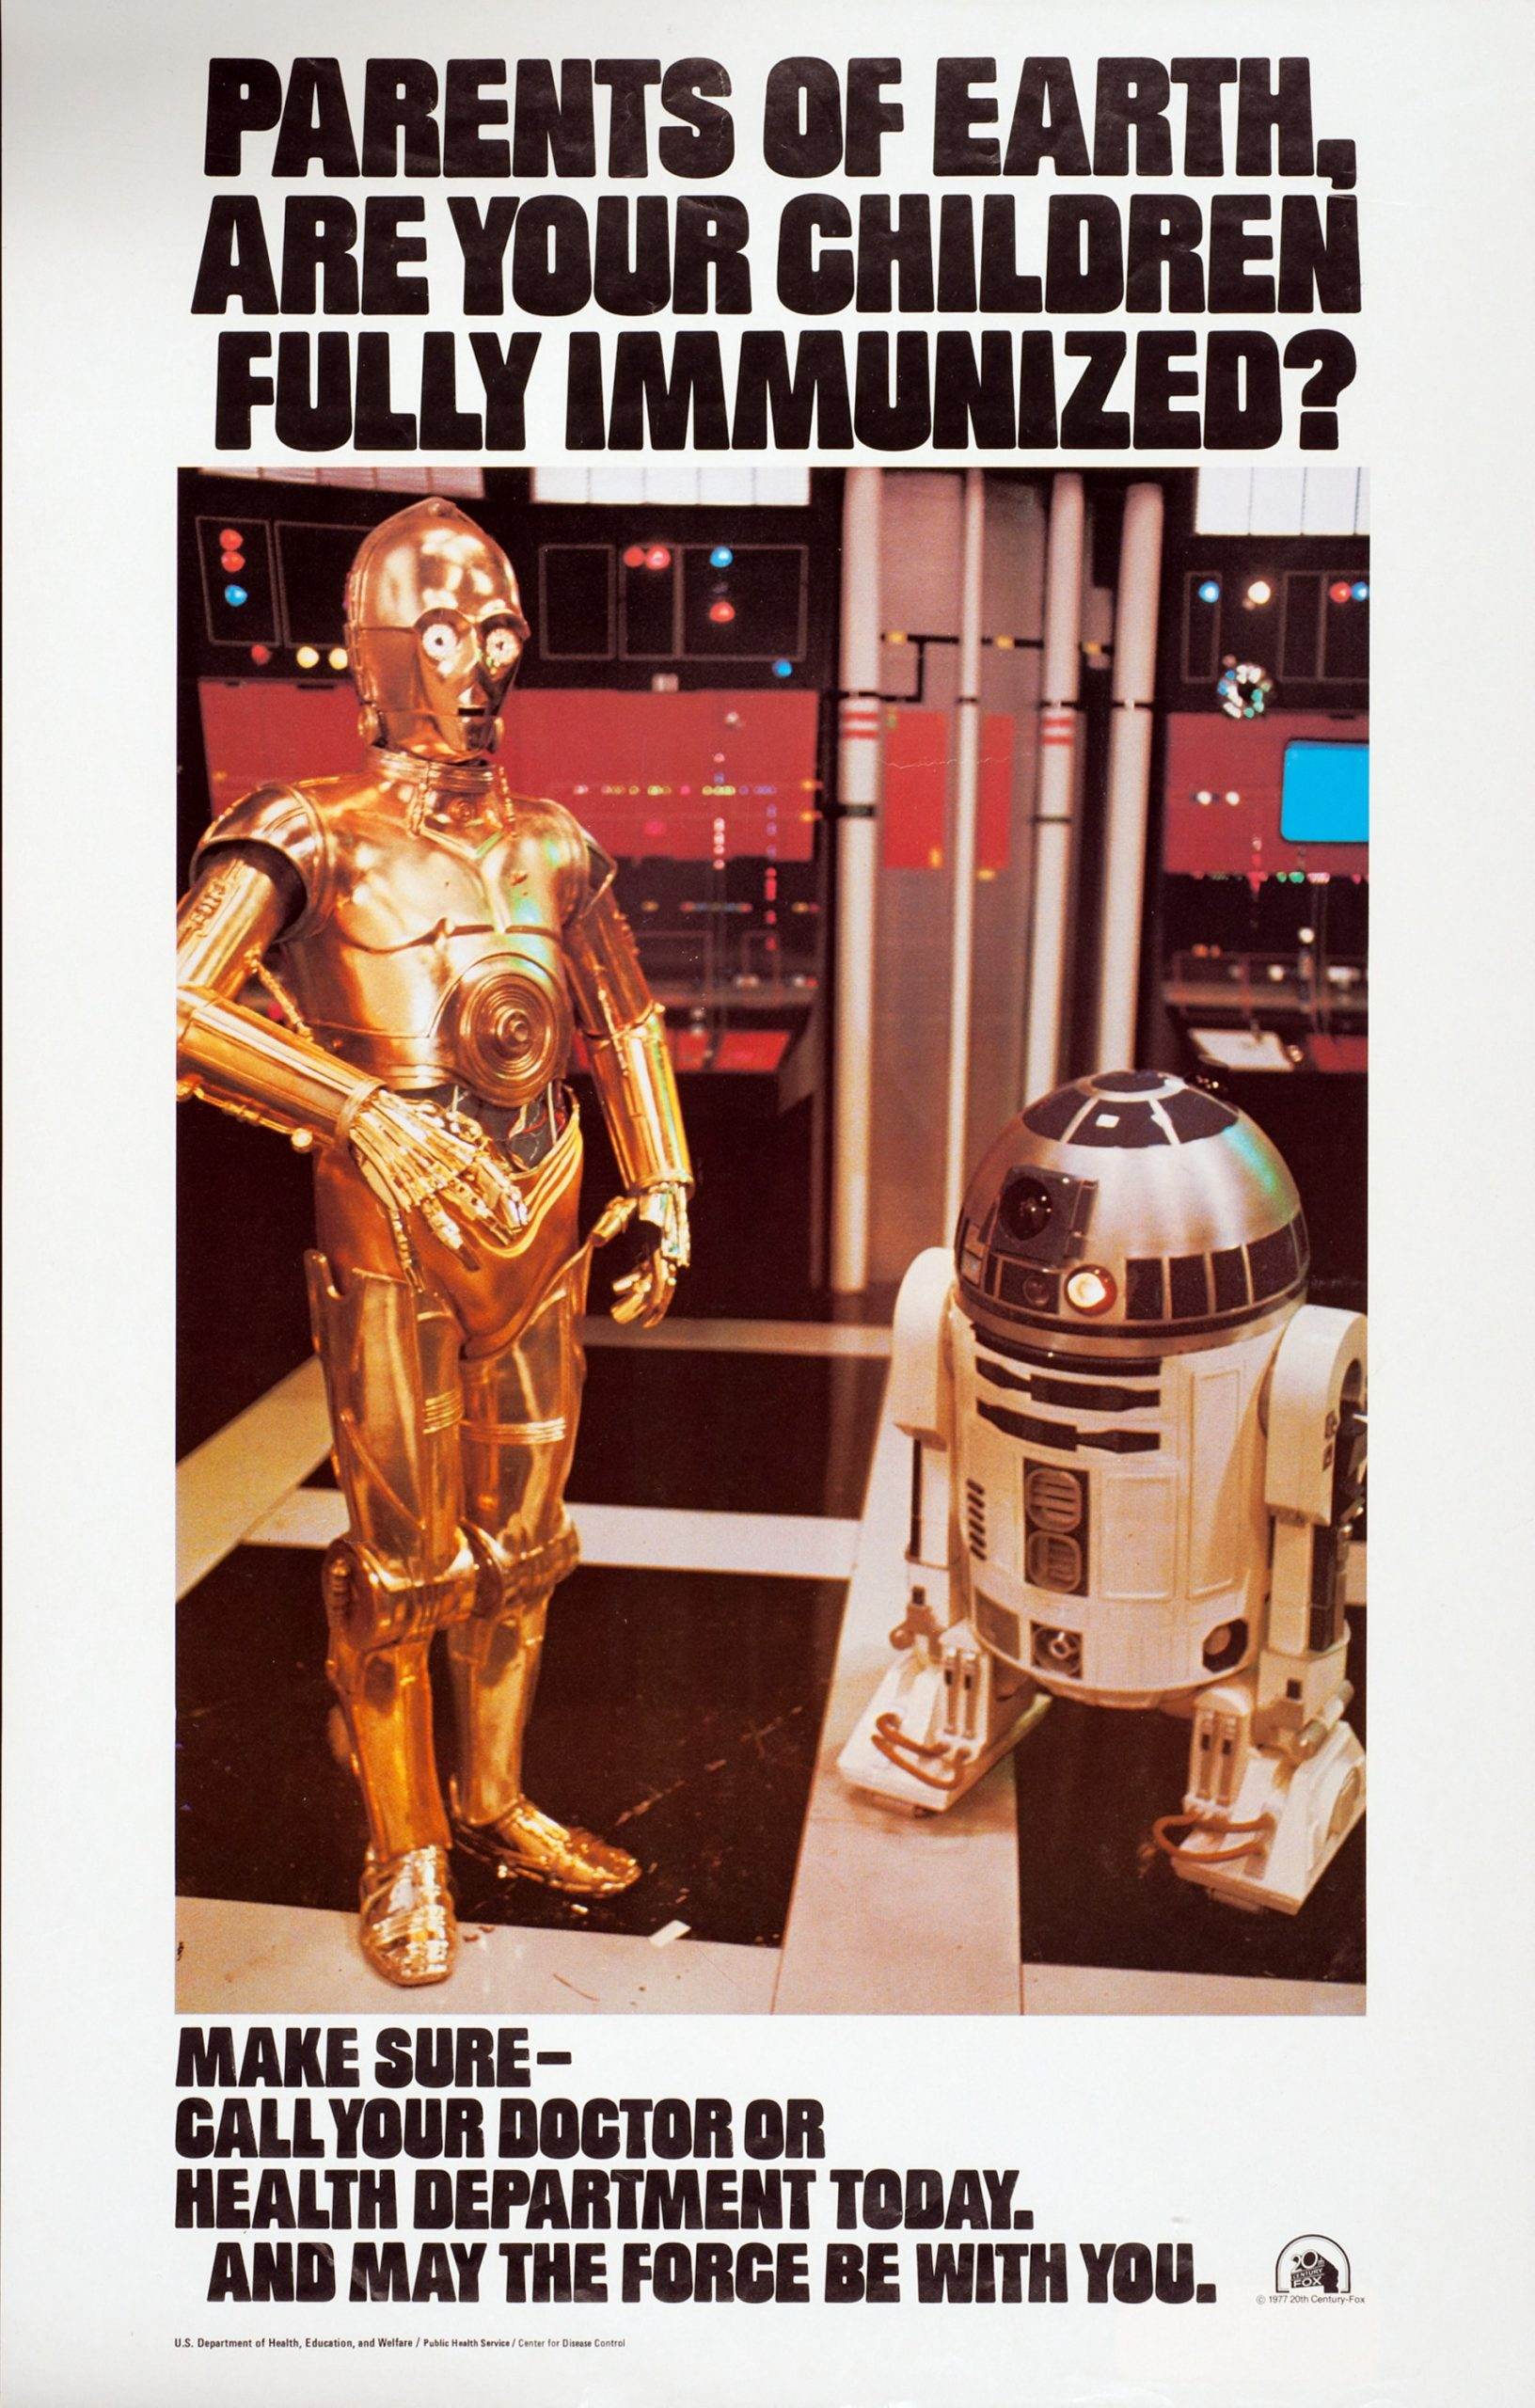 PSA poster on immunization with a photograph of the robots from Star Wars